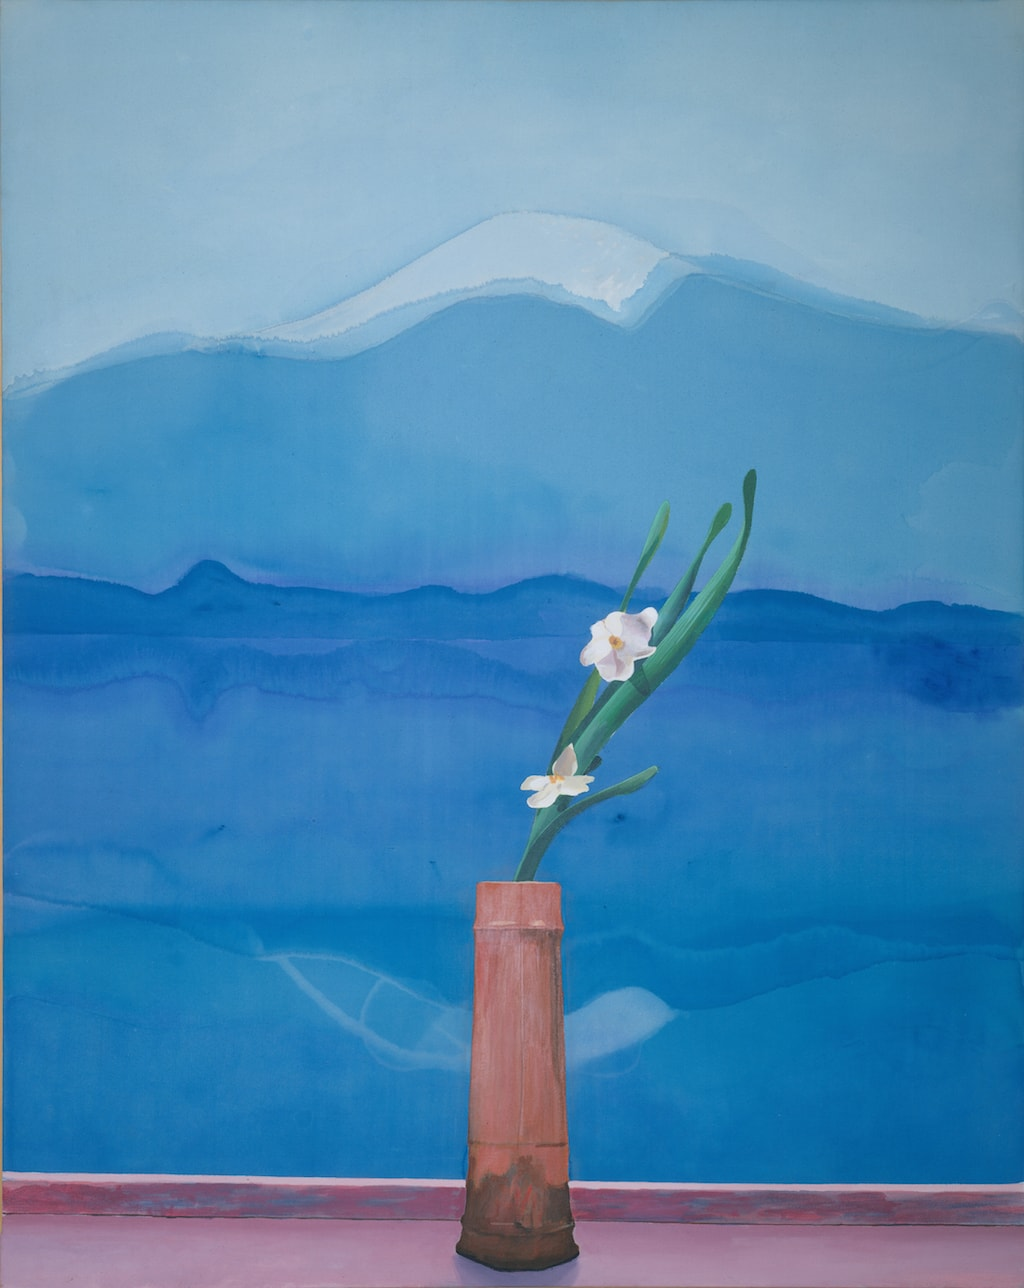 David Hockney, 'Mt. Fuji and Flowers', 1972 | © David Hockney